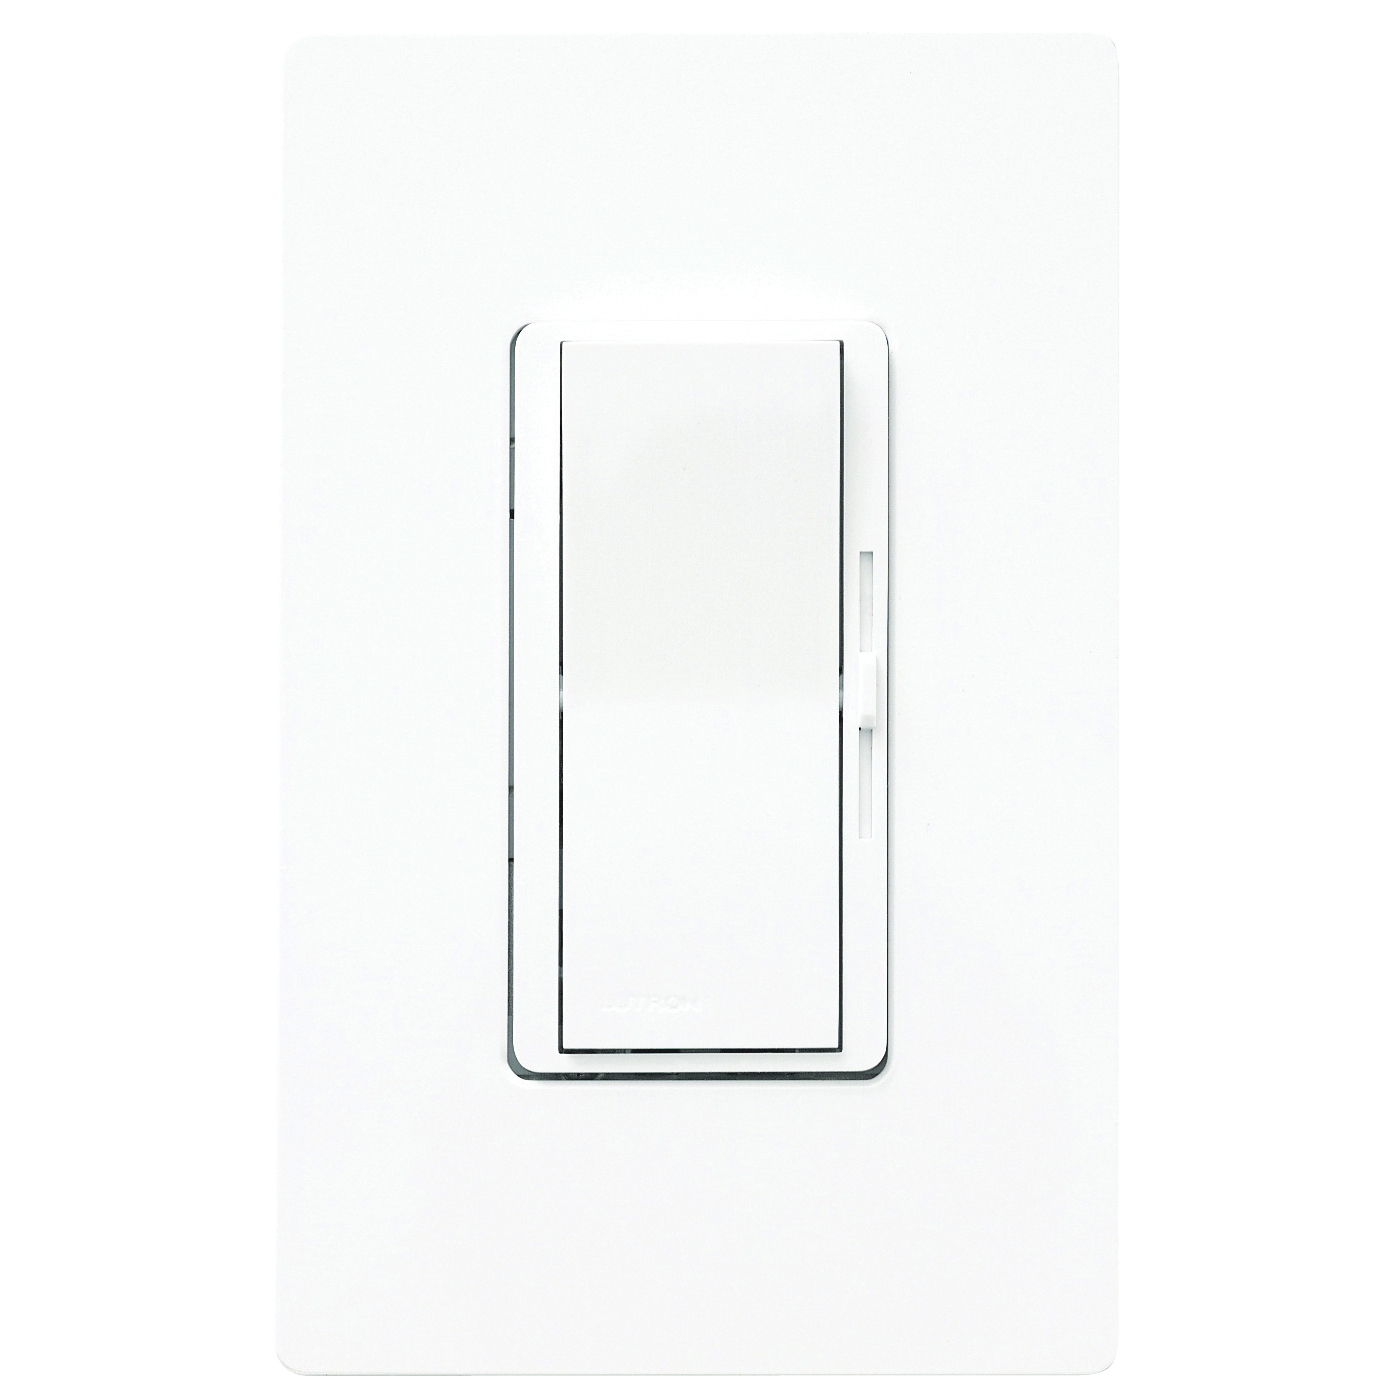 Picture of Lutron Diva DVW-603PH-WH Dimmer, 5 A, 120 V, 600 W, Incandescent Lamp, 3-Way, White